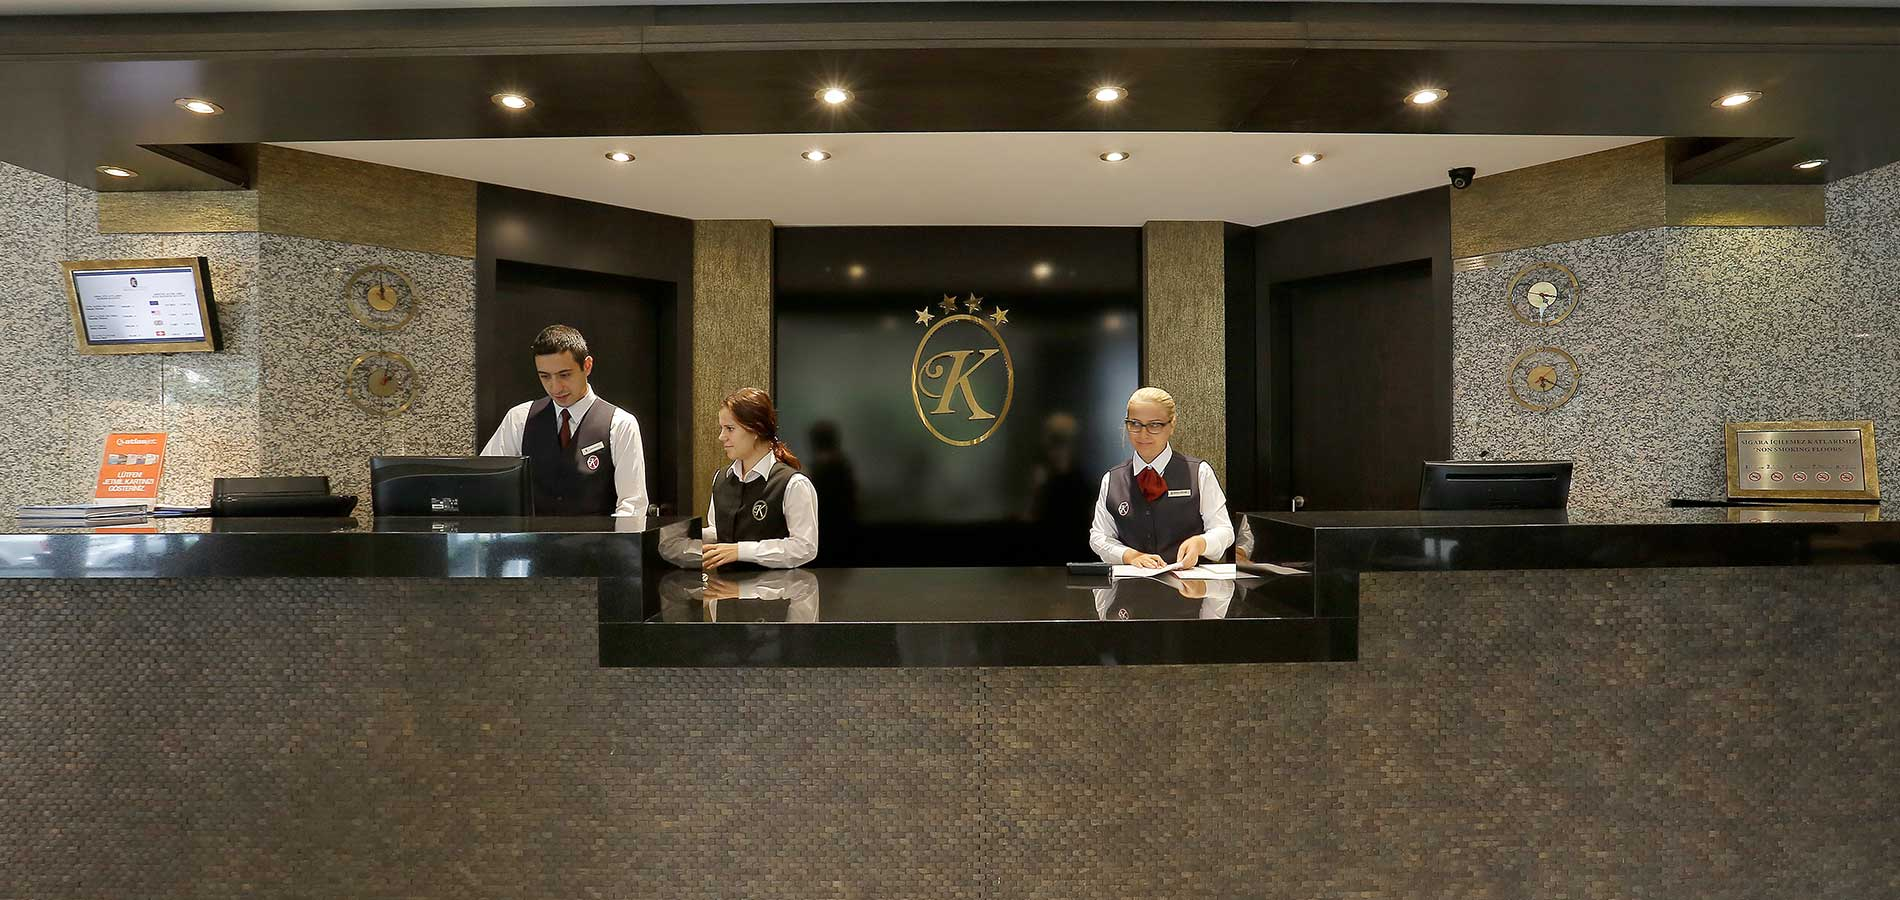 WELCOME TO KAYA PRESTIGE